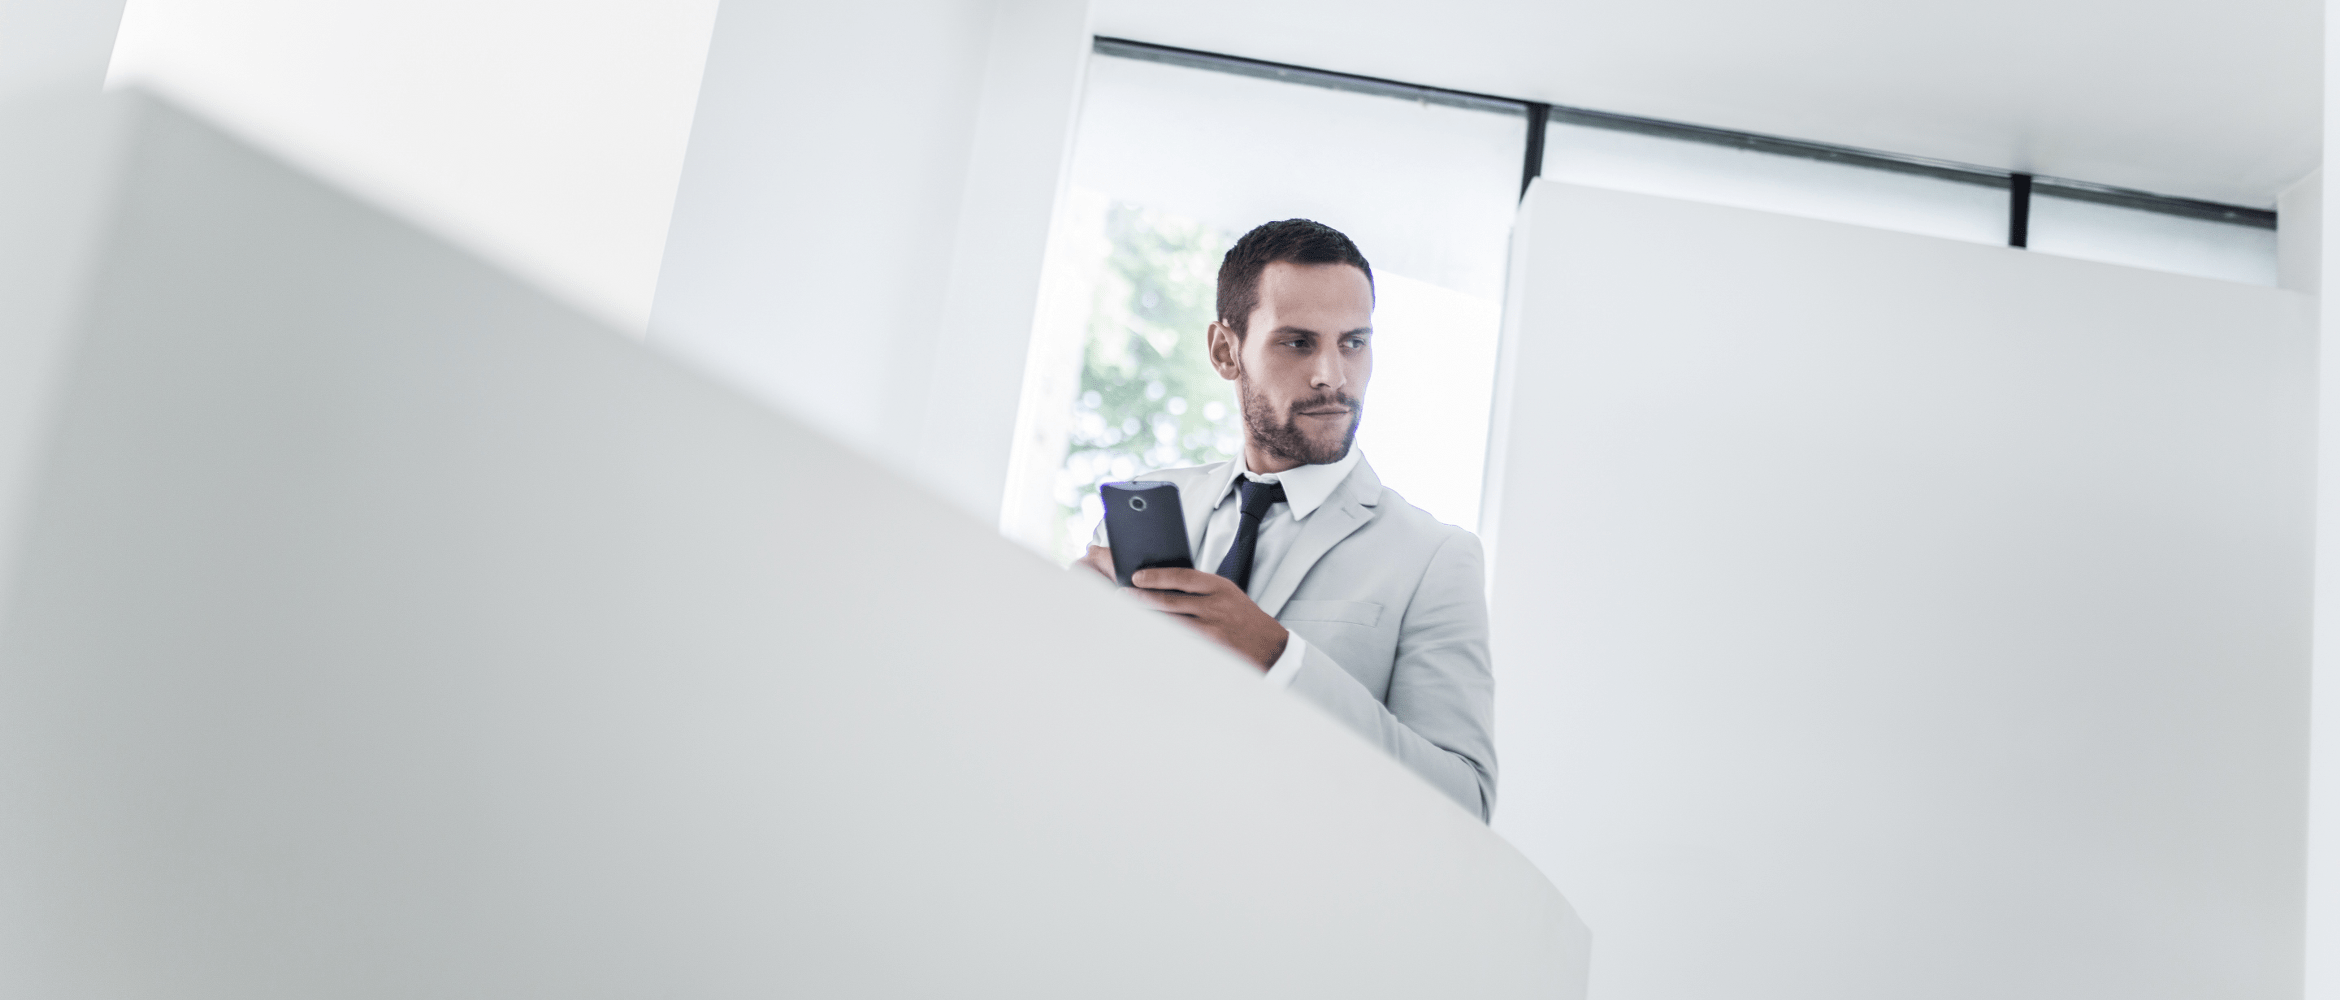 Man in a white suit with Android smartphone overlooking balcony